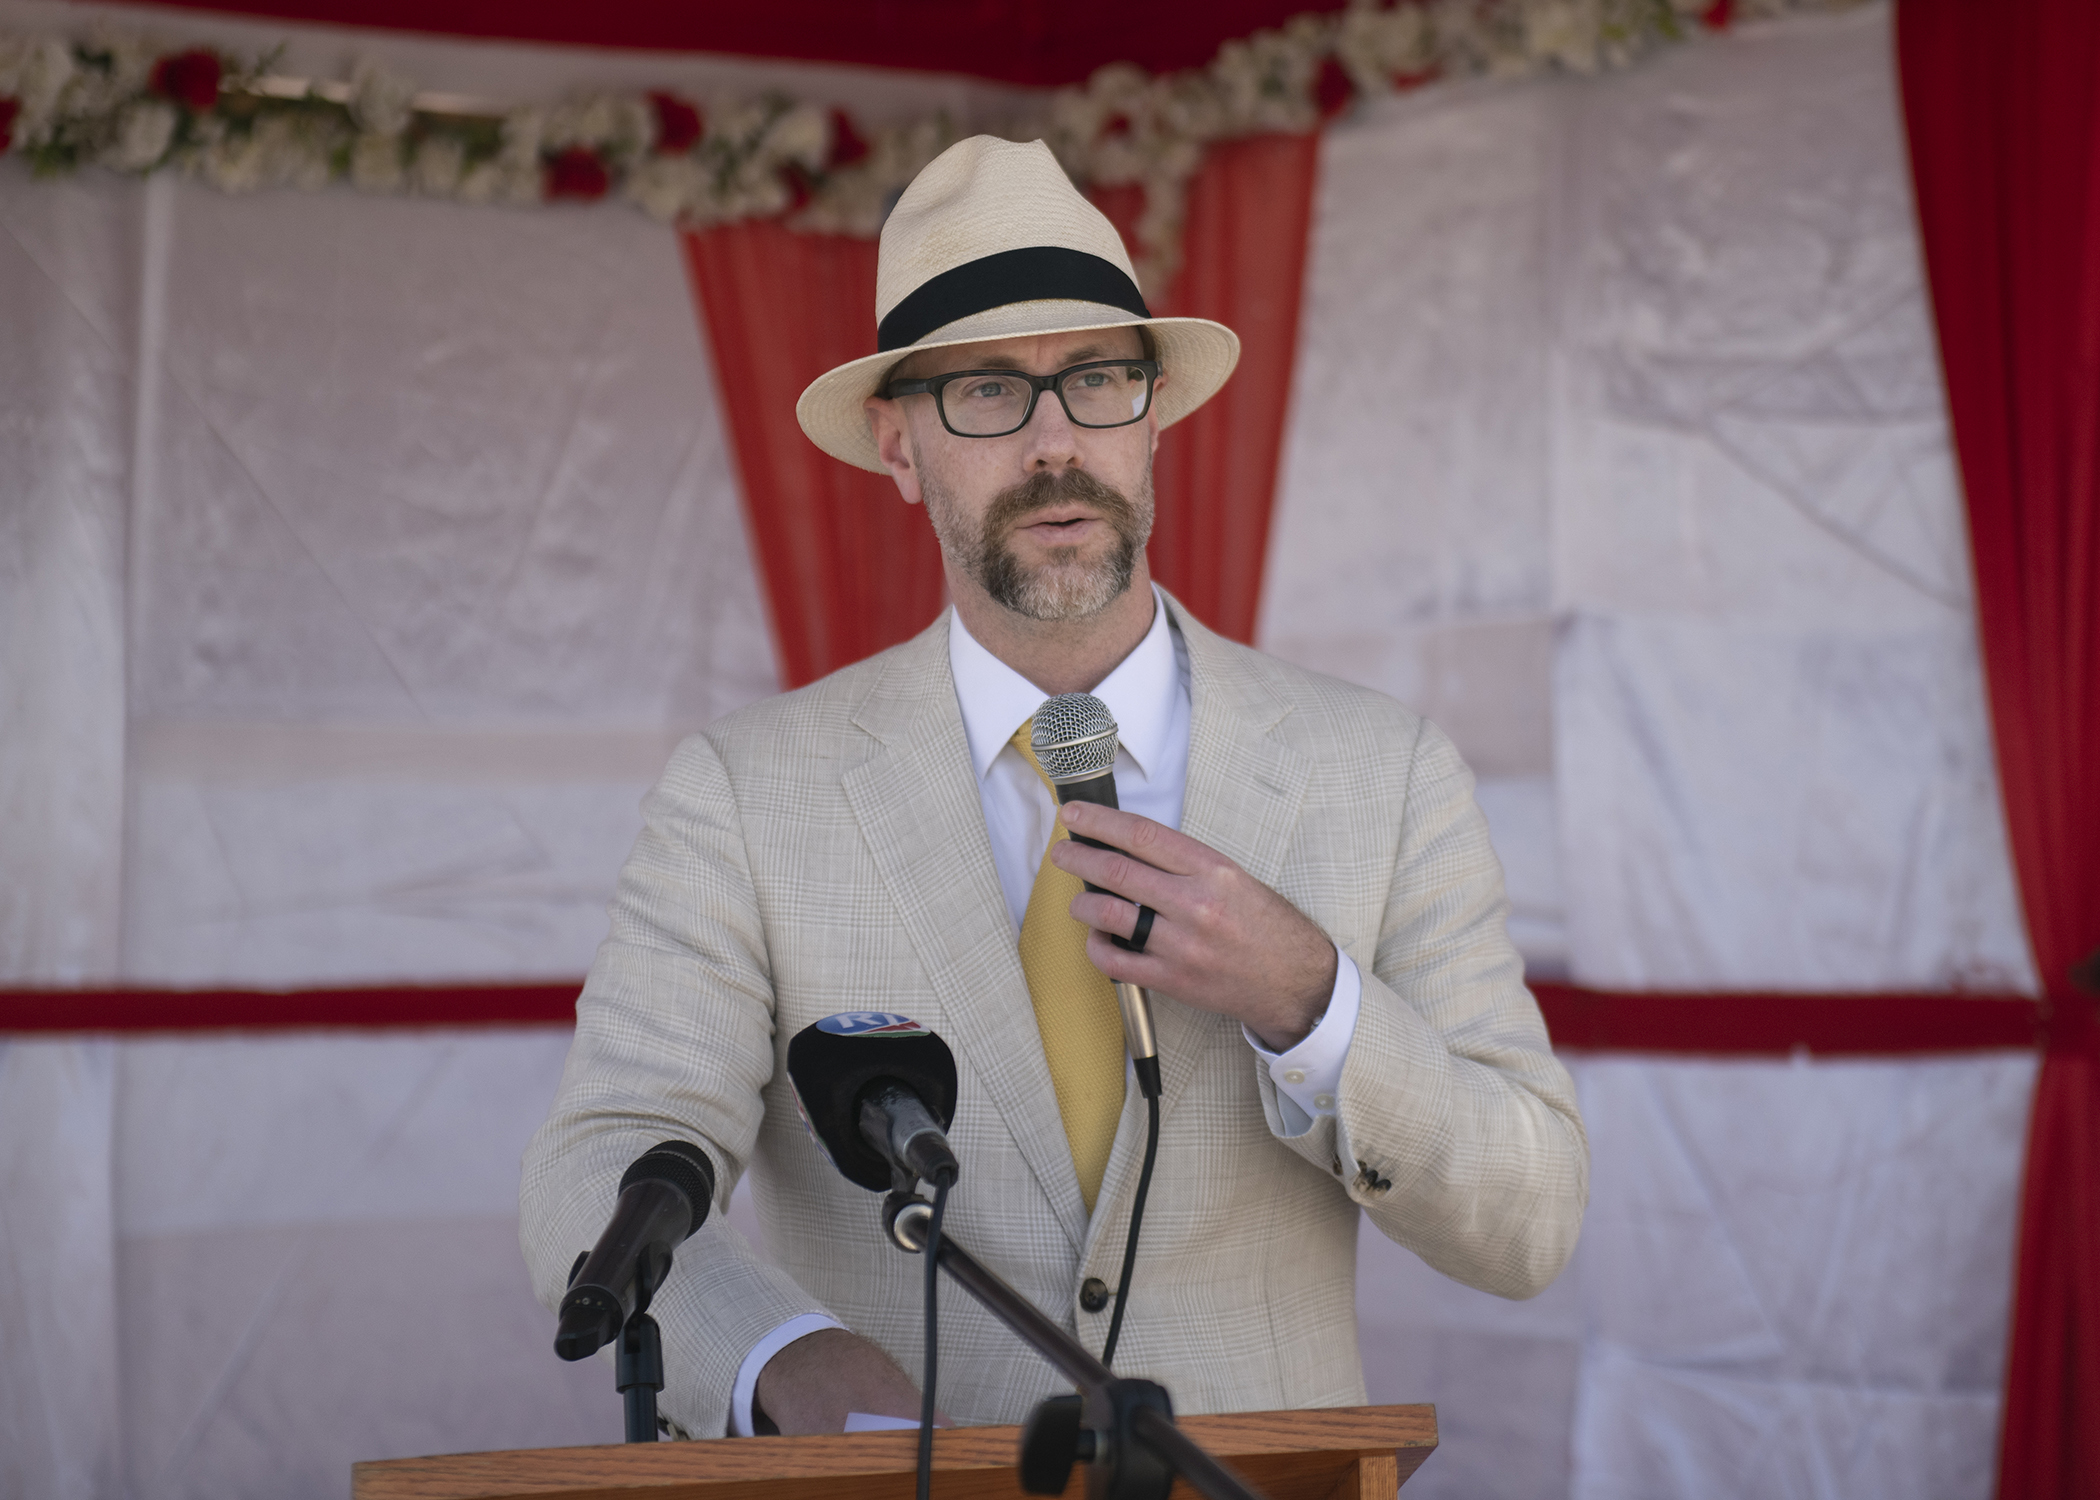 Alexander Hamilton, chargé d' affaires to the U.S. Ambassador to Djibouti, gives a speech during the Ali Oune Medical Clinic ribbon cutting ceremony in Ali Oune, Djibouti, Jan. 31, 2019. The clinic, which U.S. Navy Seabees from Naval Mobile Construction Battalion 1, assigned to CJTF-HOA, have been working to complete for five months, is intended to enhance the Ministry of Health for Djibouti's ability to provide basic medical, birth and after care to the Ali Oune village and its more than 1,000 residents and rural neighbors. (U.S. Air Force photo by Tech. Sgt. Shawn Nickel)